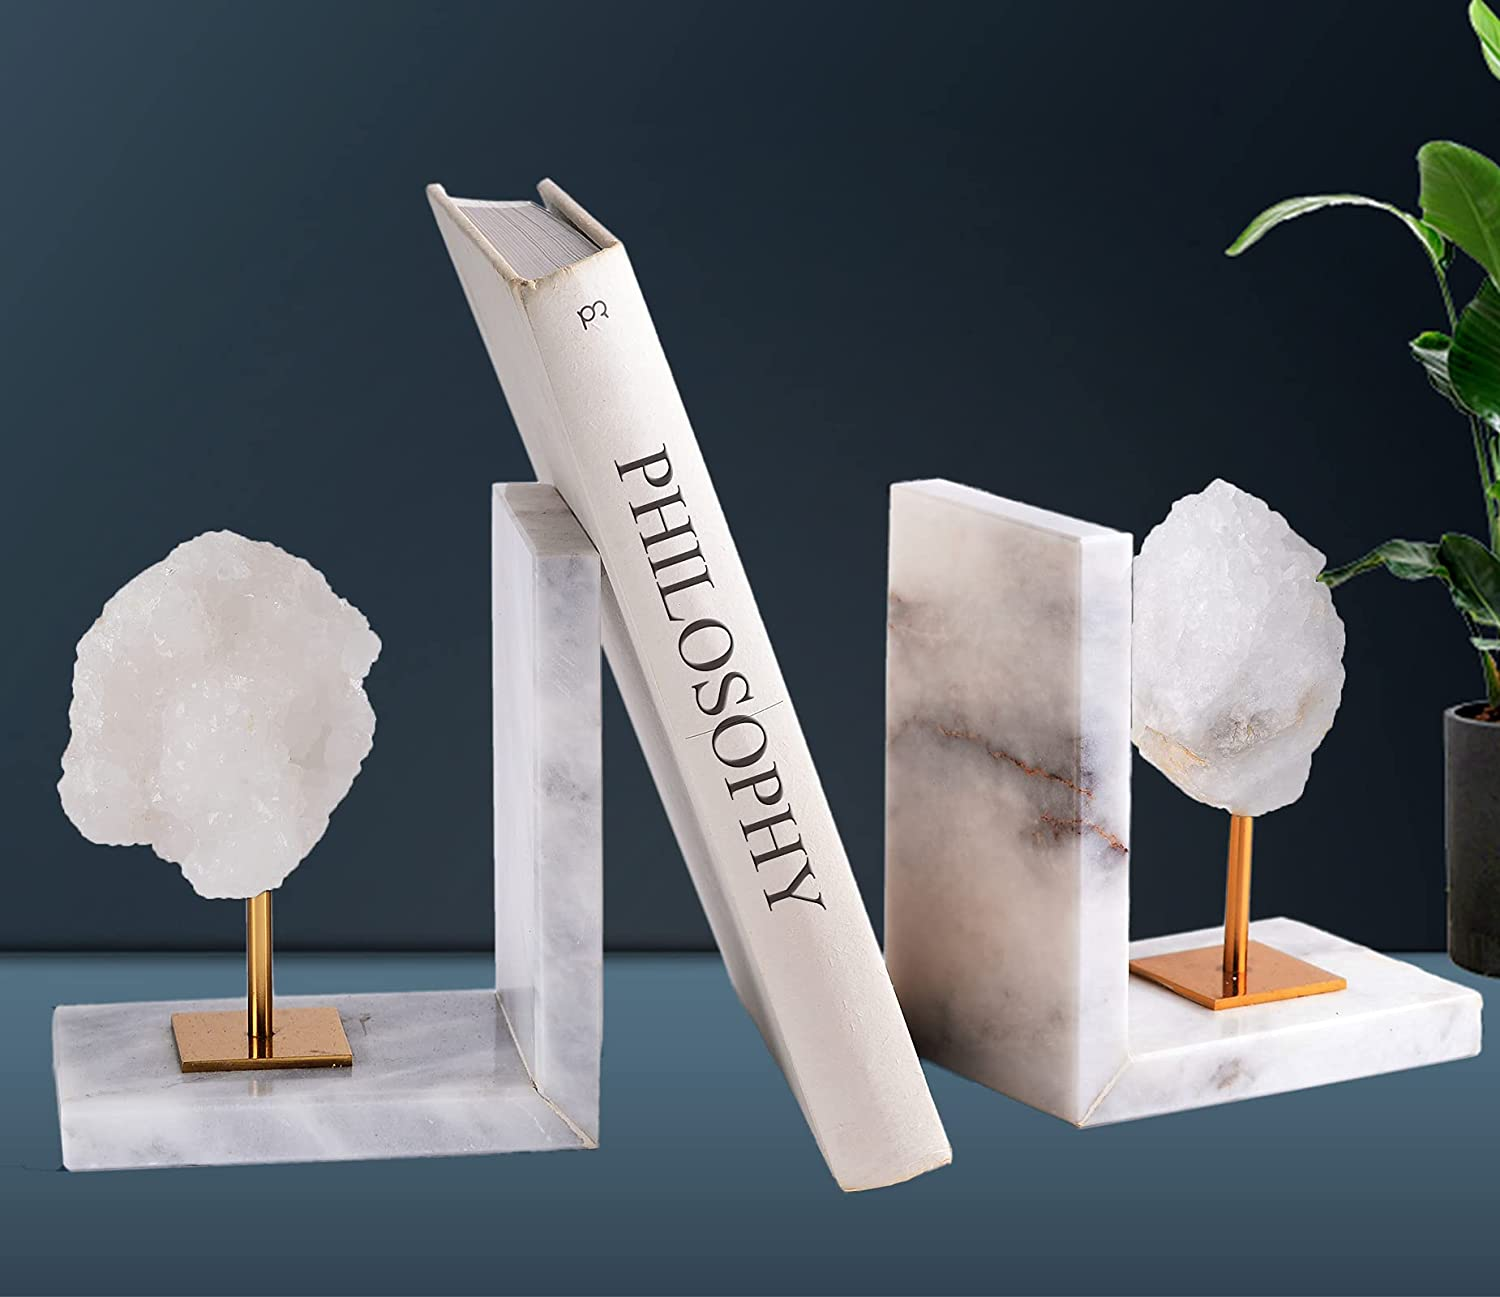 AMOYSTONE Geode Bookends Decorative White Max Large special price !! 72% OFF Agate He Ends Book for